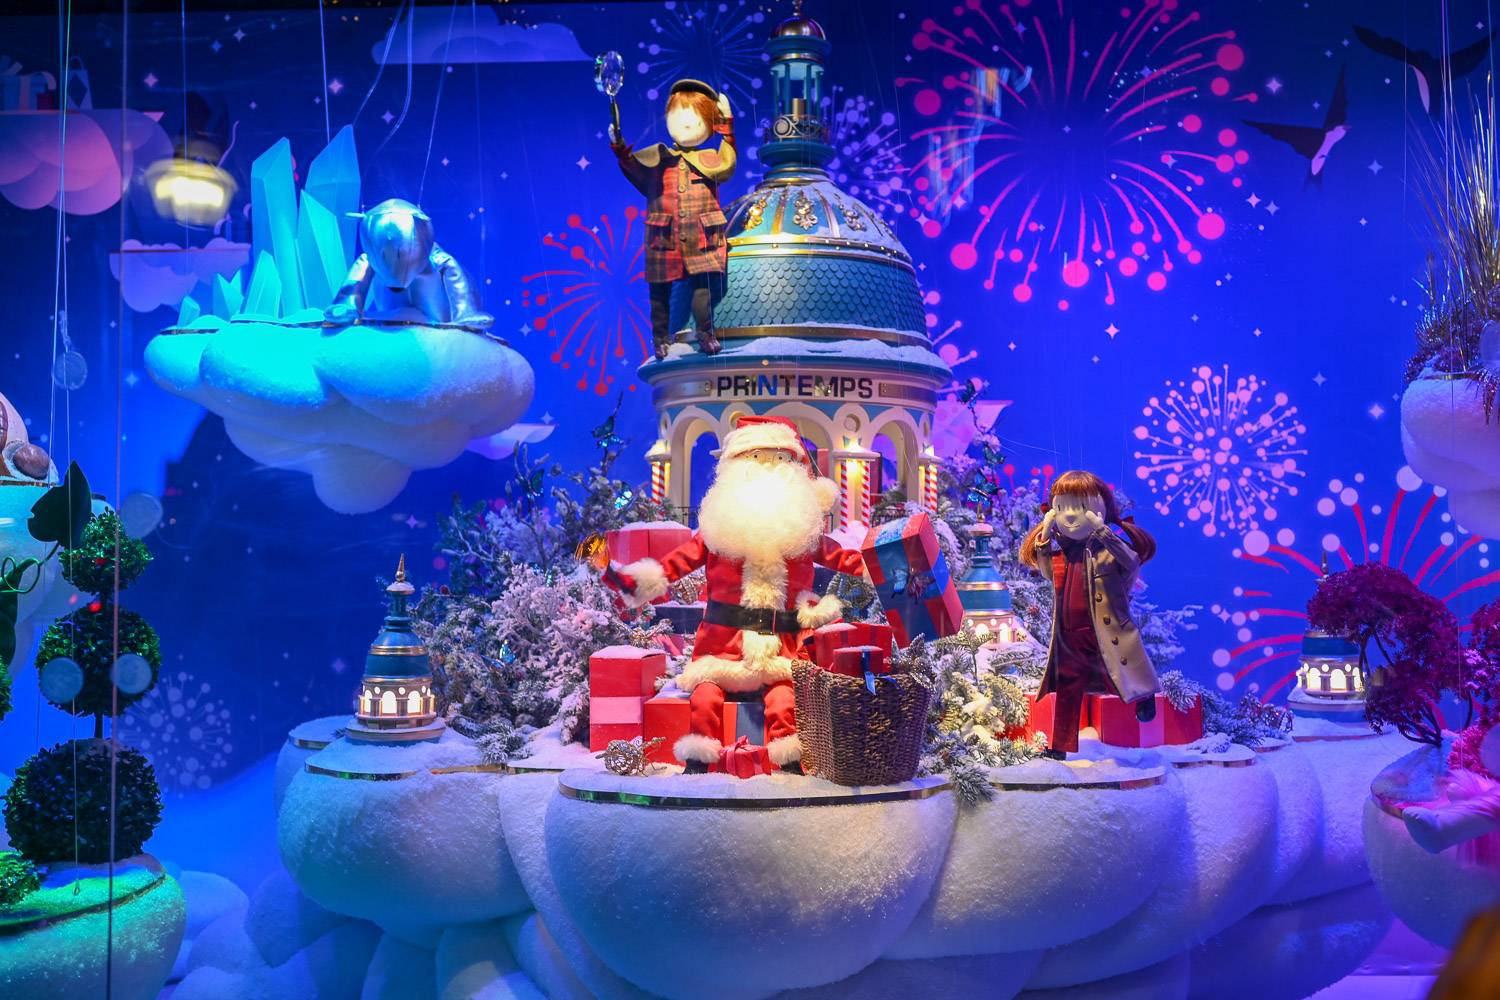 Image of Christmas window display of animated figurines in an icy wonderland with Santa Claus figure in the middle surrounded by presents.